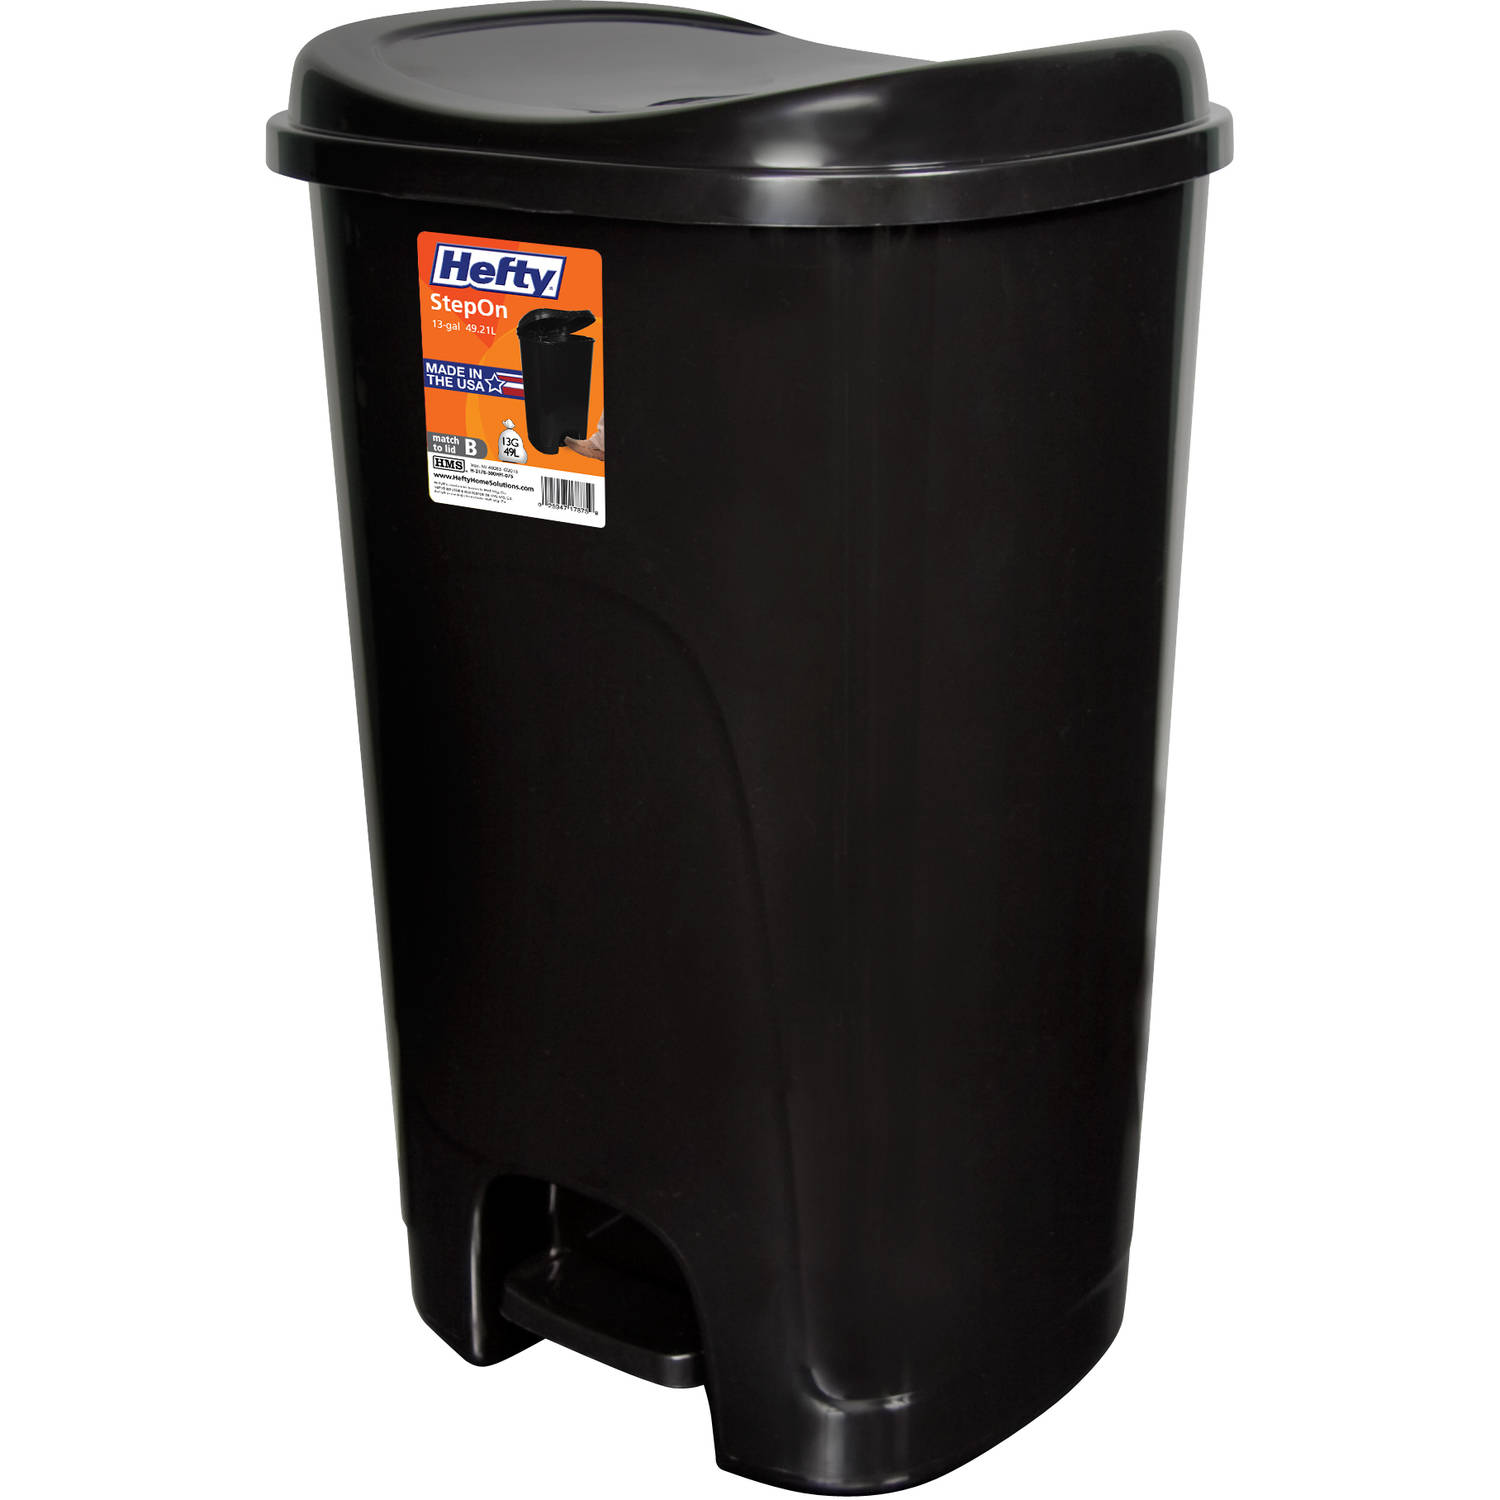 black kitchen trash bags bar stool hefty step on 13 gallon can ebay